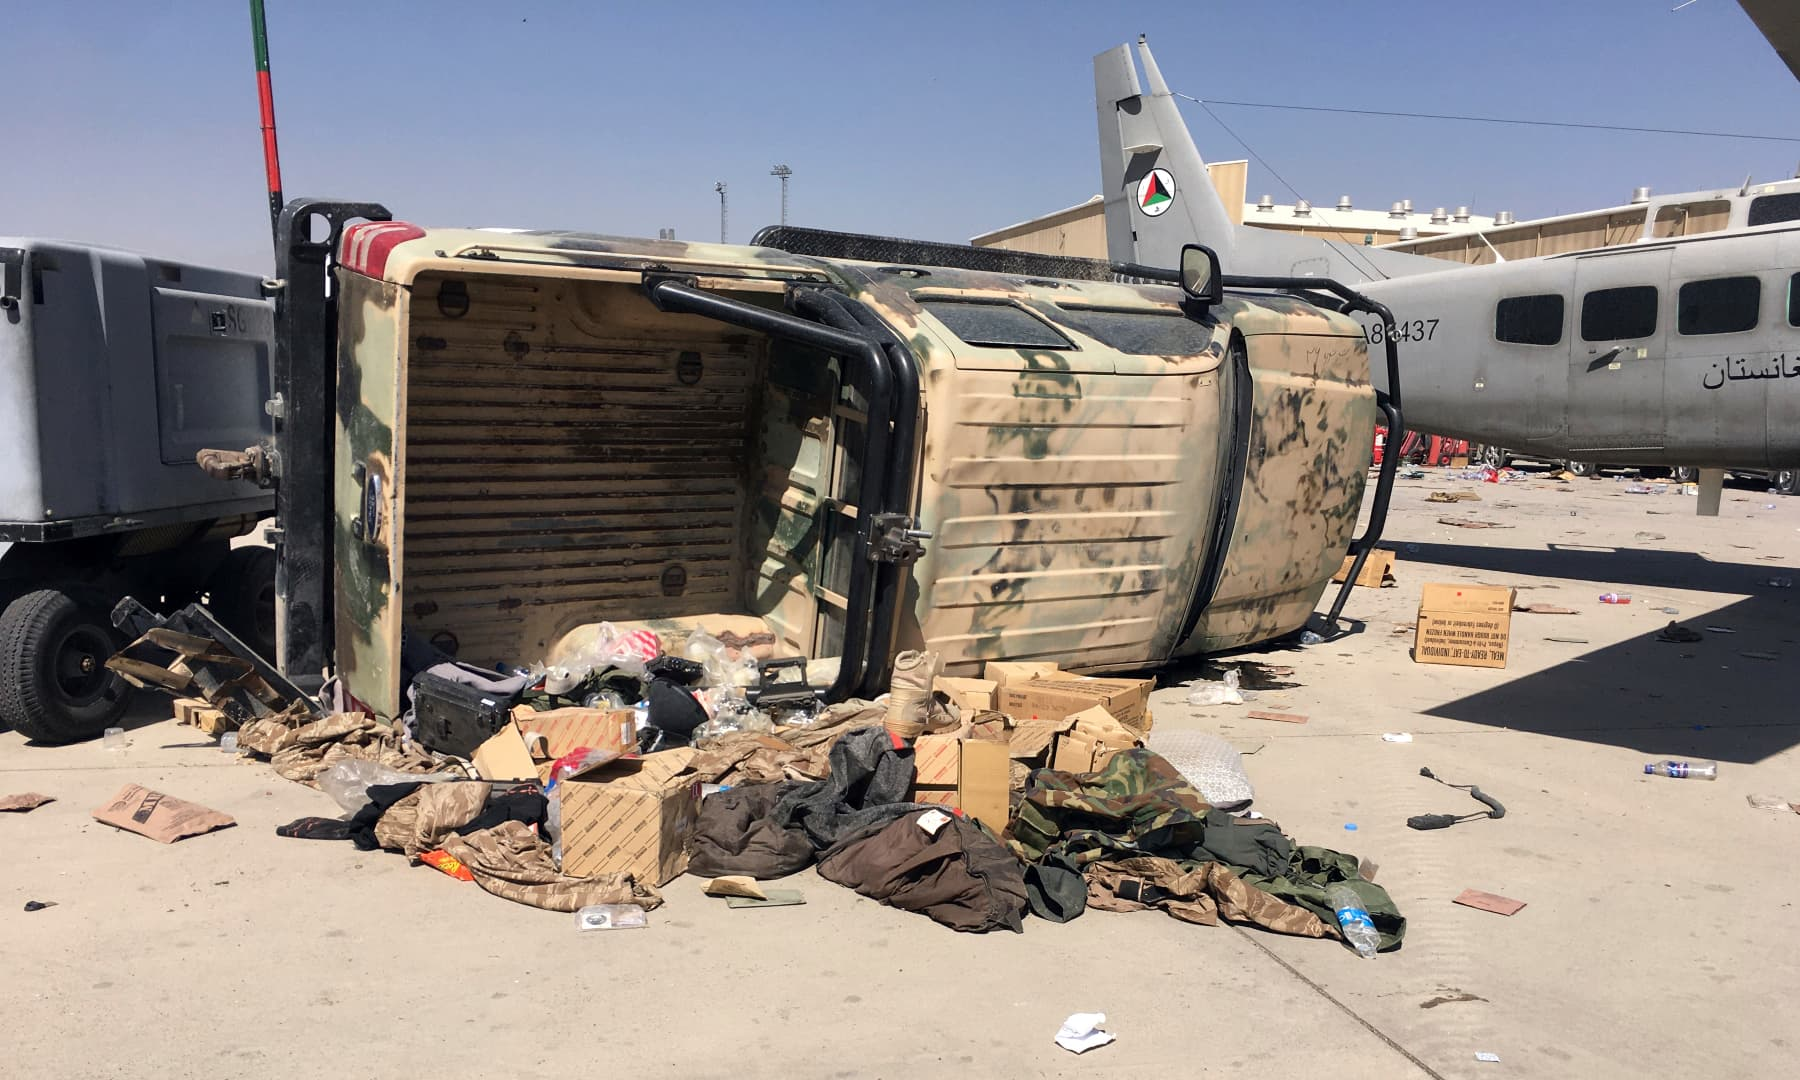 A damaged Afghan military airplane and vehicle are seen after the Taliban's takeover inside the Hamid Karzai International Airport in Kabul, Afghanistan on September 5, 2021. — AP